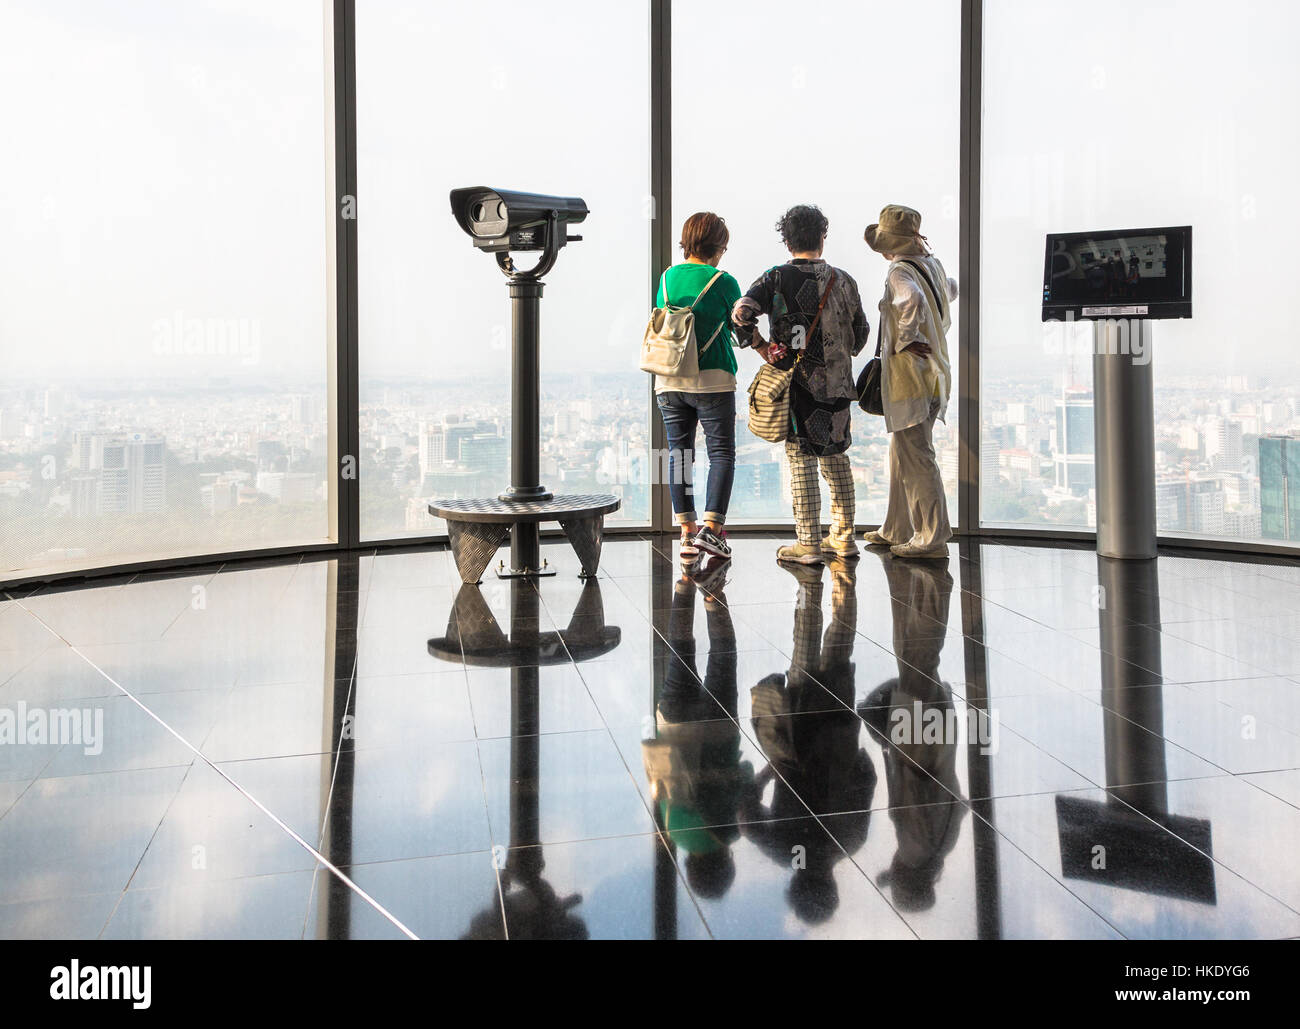 HO CHI MINH CITY, VIETNAM - FEBRUARY 2, 2016: 3 Asian female tourists enjoy the view over Ho Chi Minh City from - Stock Image